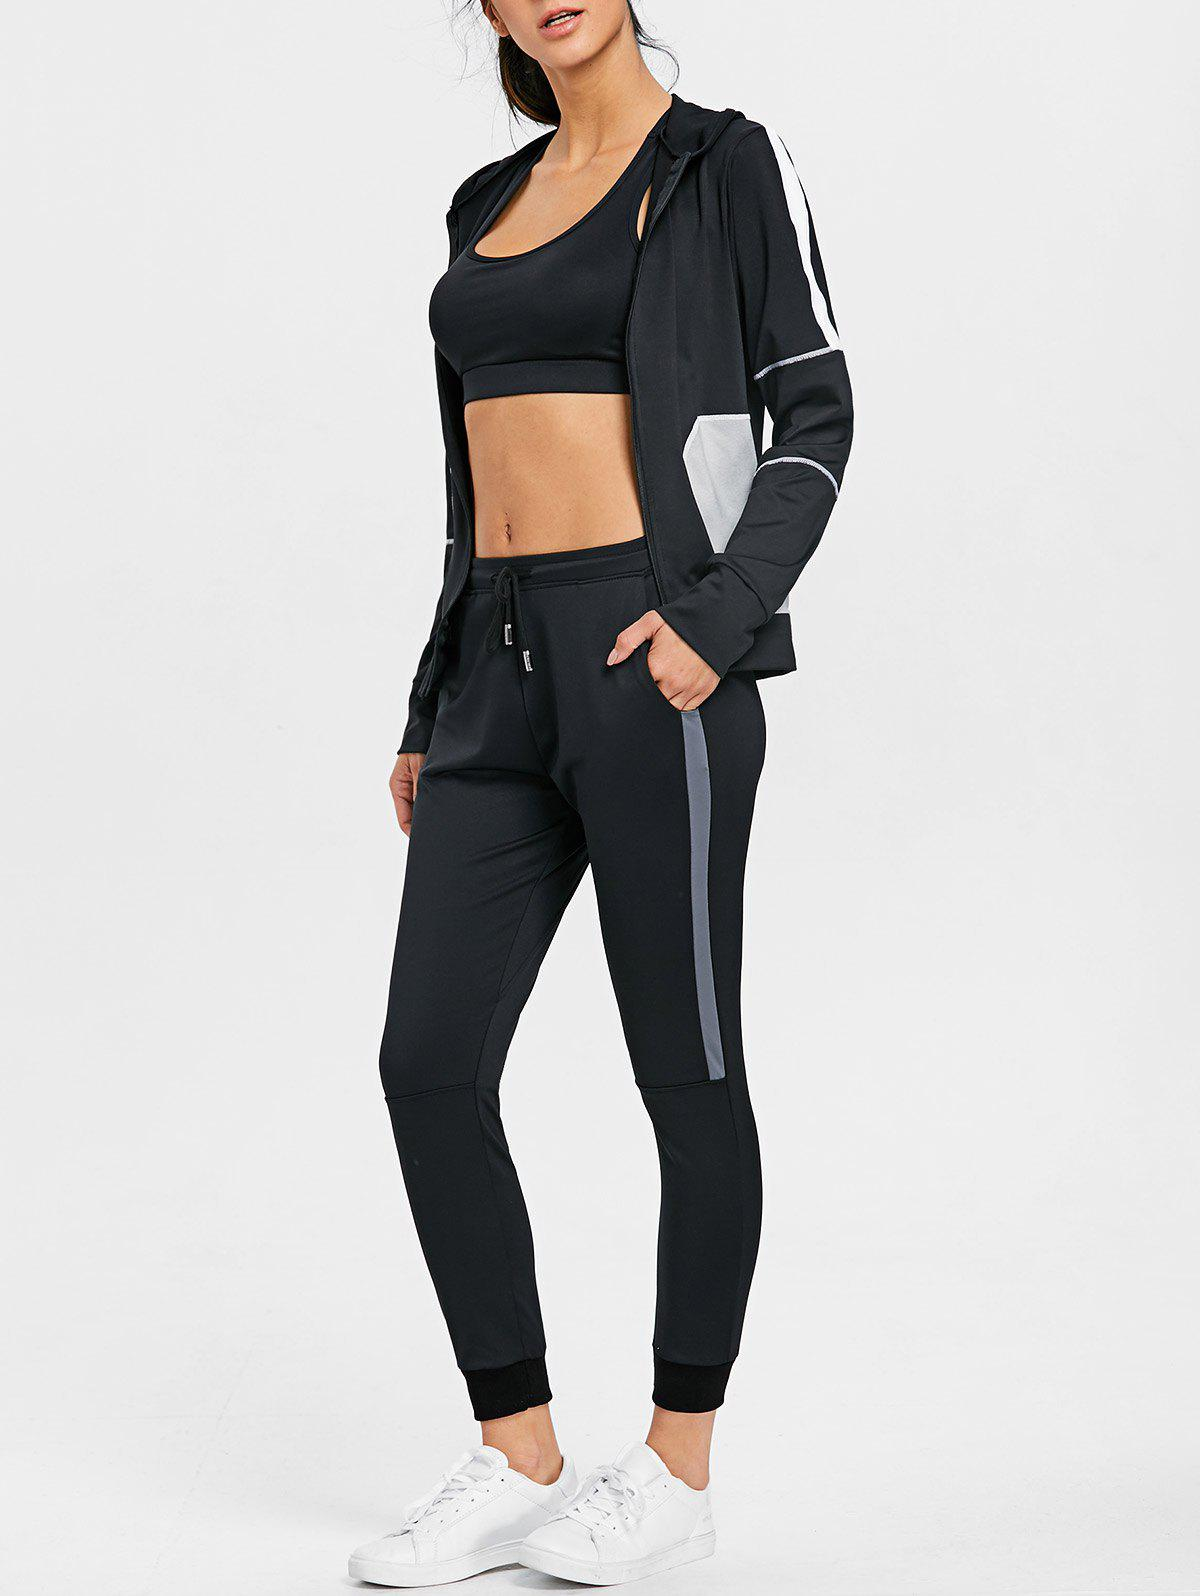 High Waisted Color Block Three Piece Gym Outfits - BLACK L